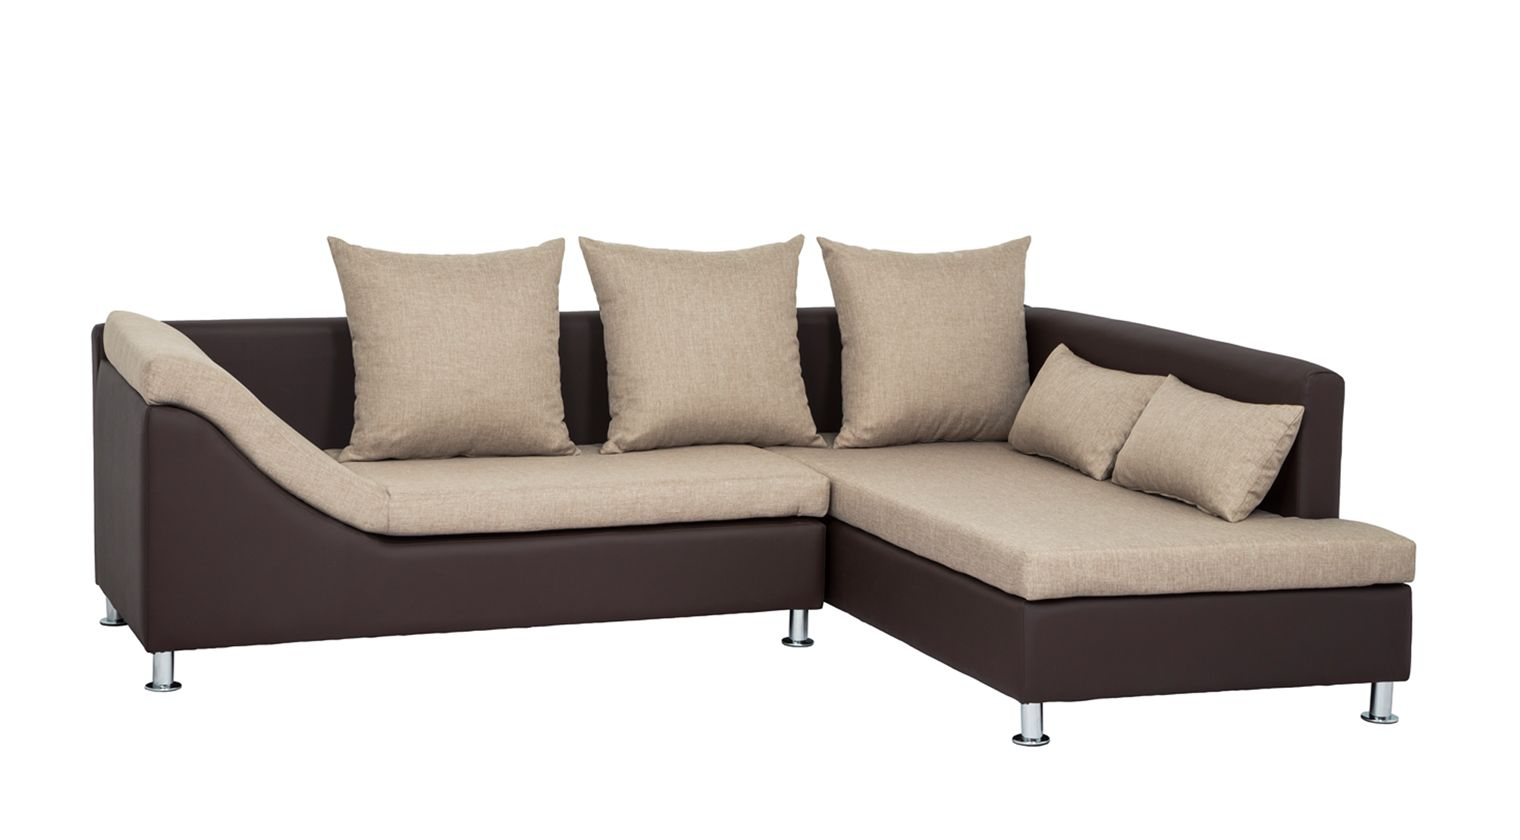 Comprar chaise longue divano chaise longue izq 3 5 plazas for Chaise longue interiores